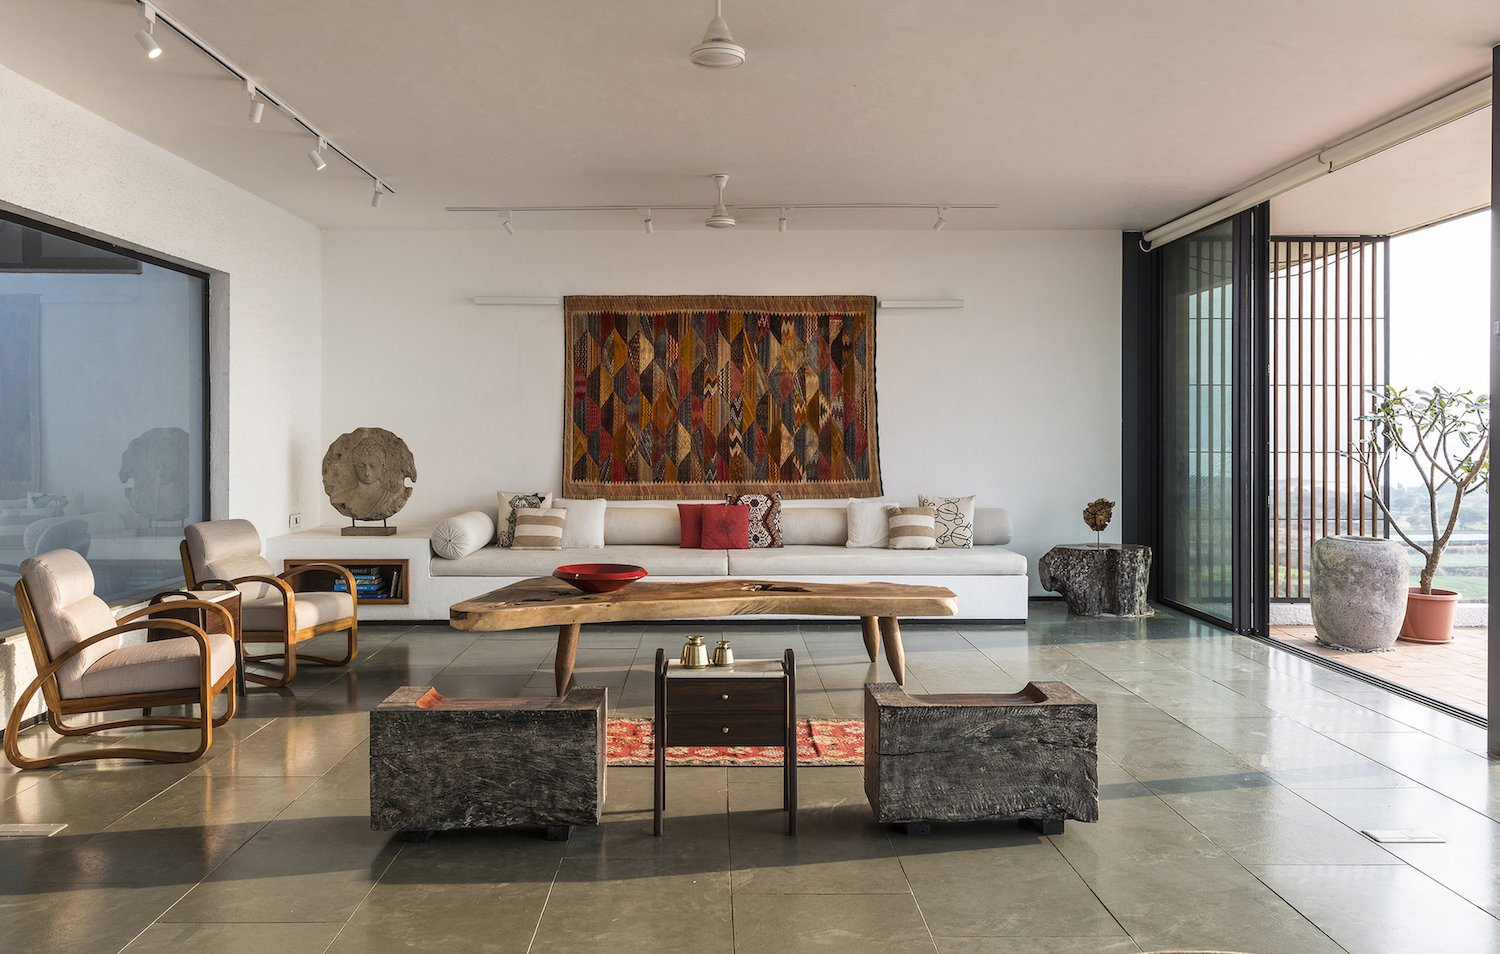 Living Room, Track Lighting, Pendant Lighting, Coffee Tables, Sofa, Chair, End Tables, and Rug Floor A tree-stump end table adds a dose of organic style to the modern living area.    Photo 6 of 14 in A Modern Home in India Evokes Emotion With a Giant 4-Ton Rock